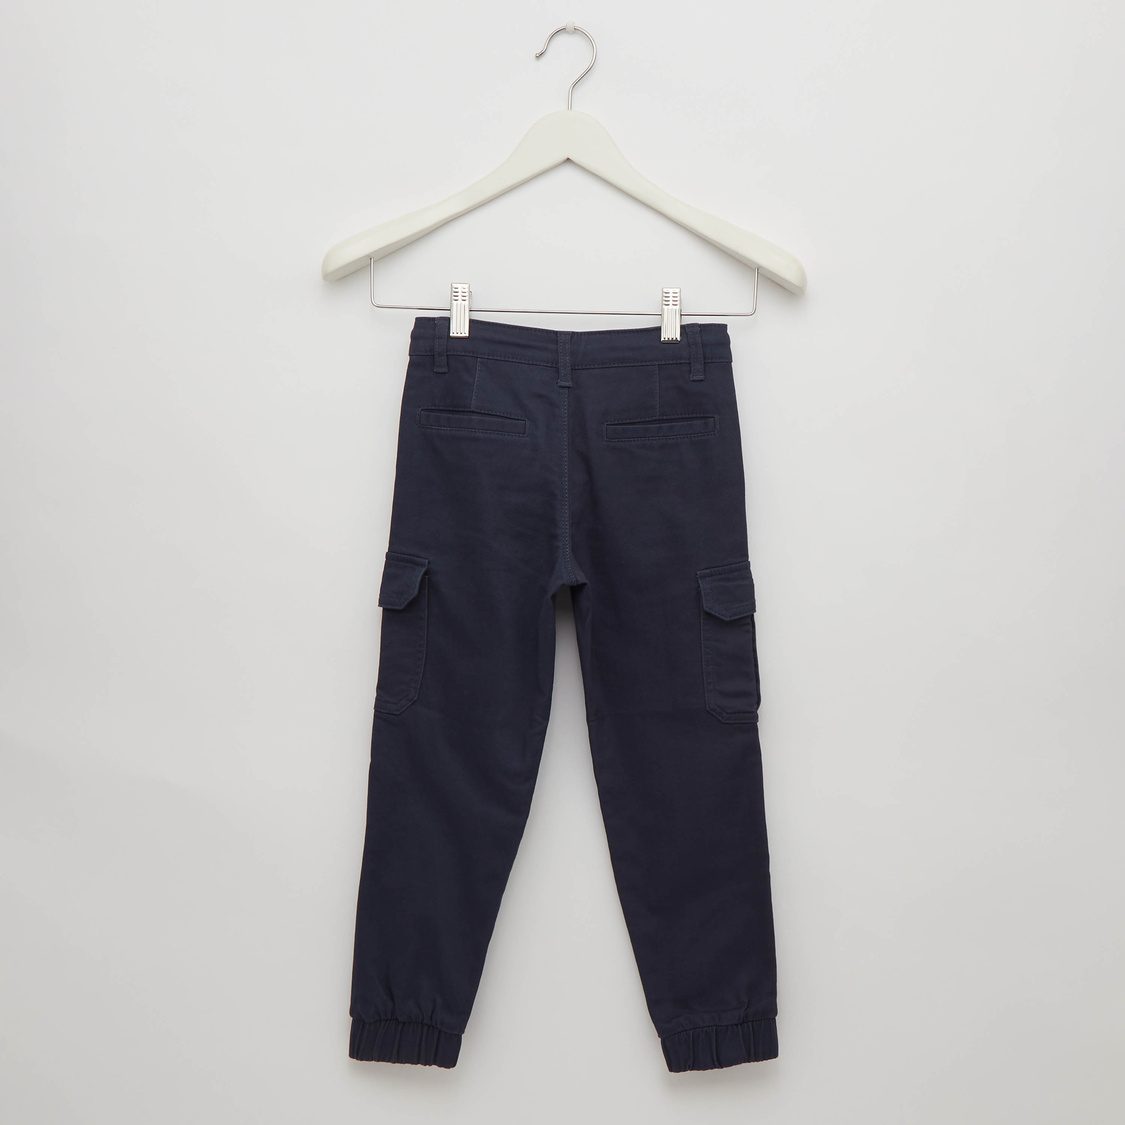 Full Length Cargo Jog Pants with Pockets and Waist Tie-Up